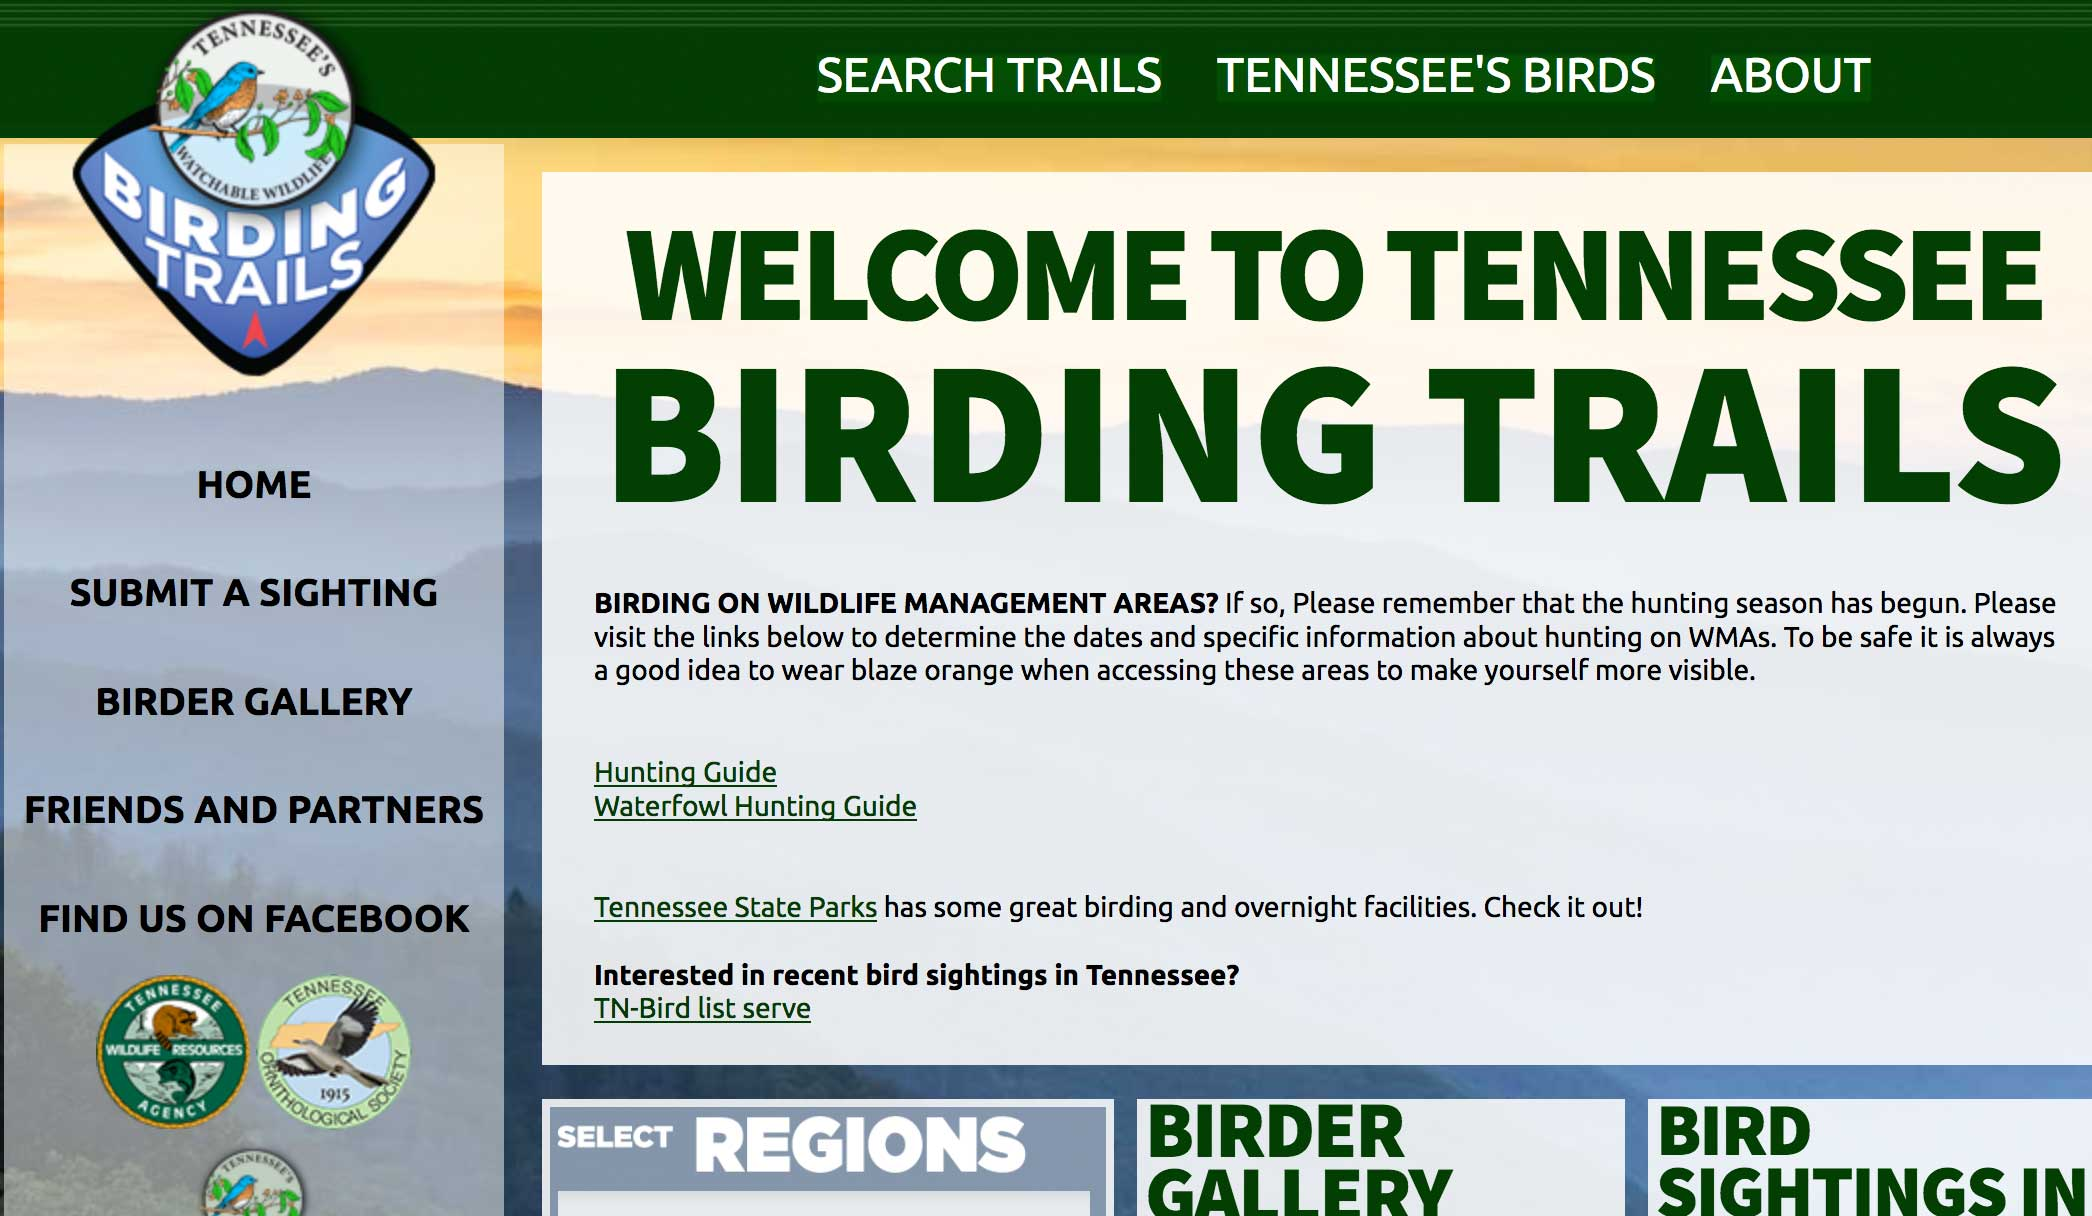 Tennessee Birding Trails